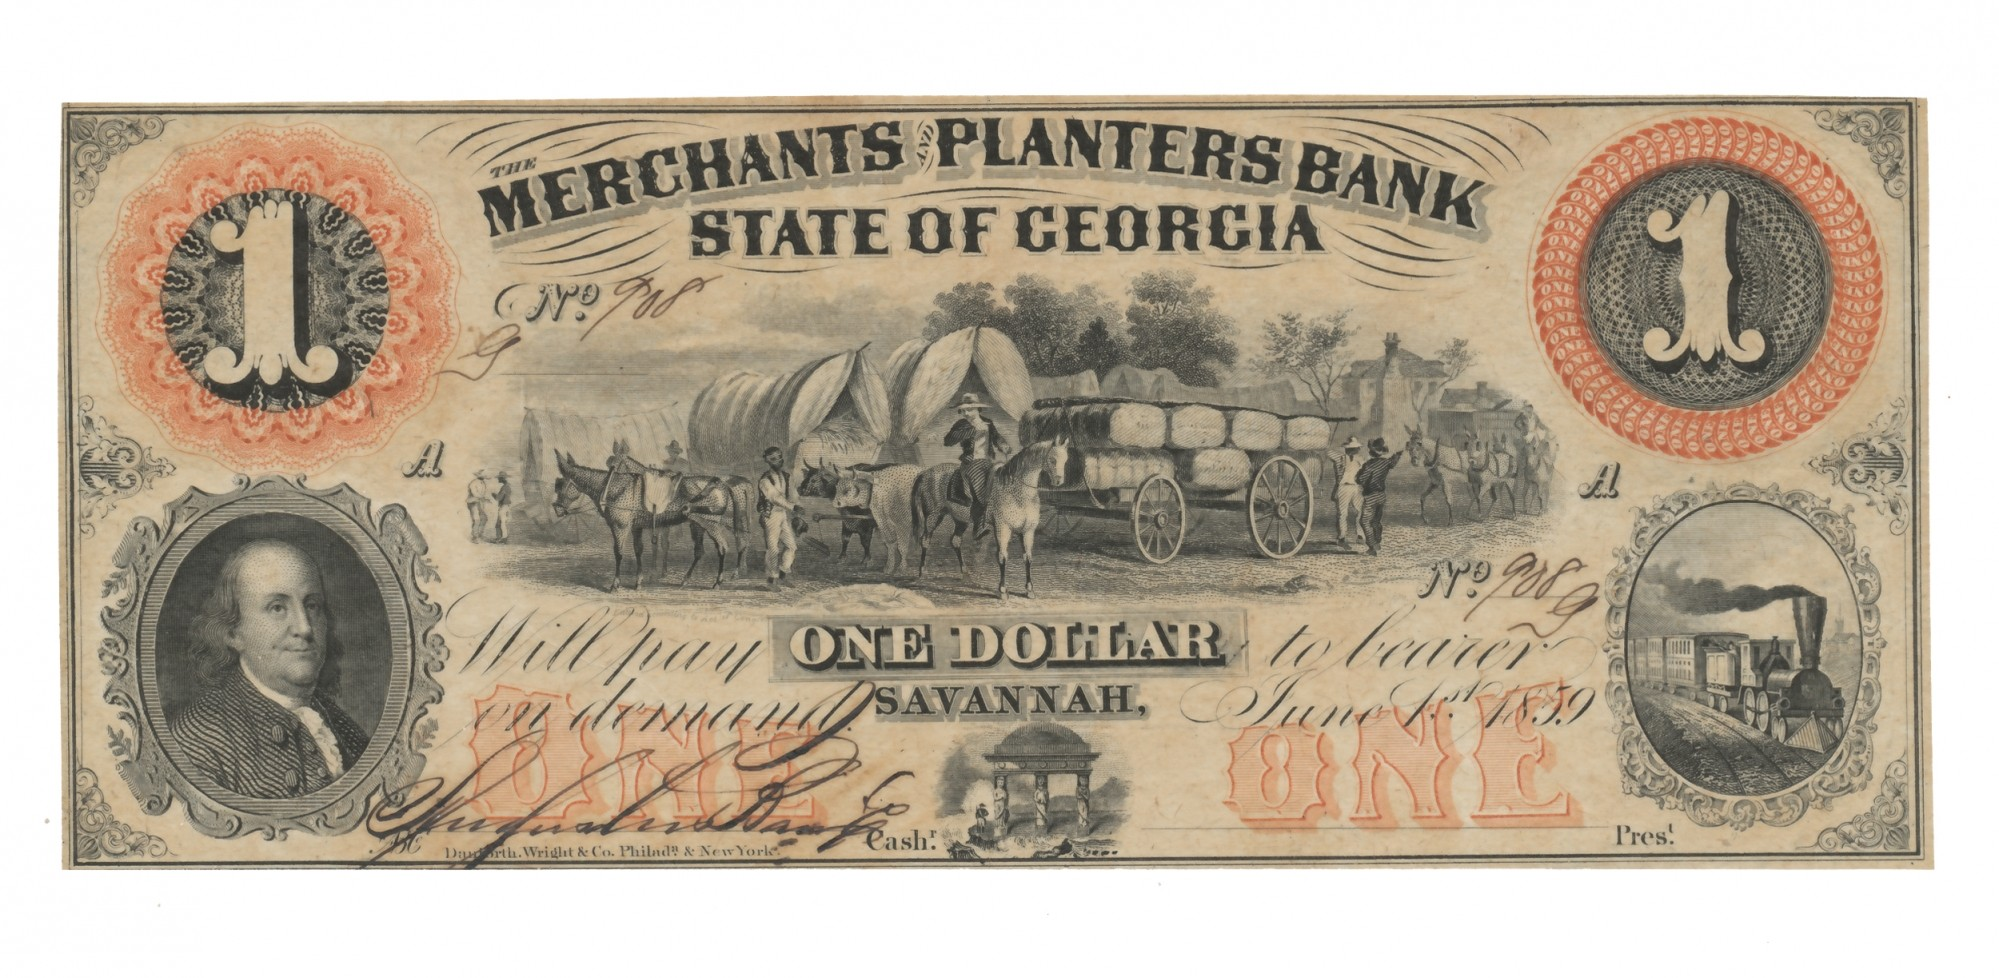 1859 GEORGA $1 NOTE FEATURING WAGONS & BEN FRANKLIN